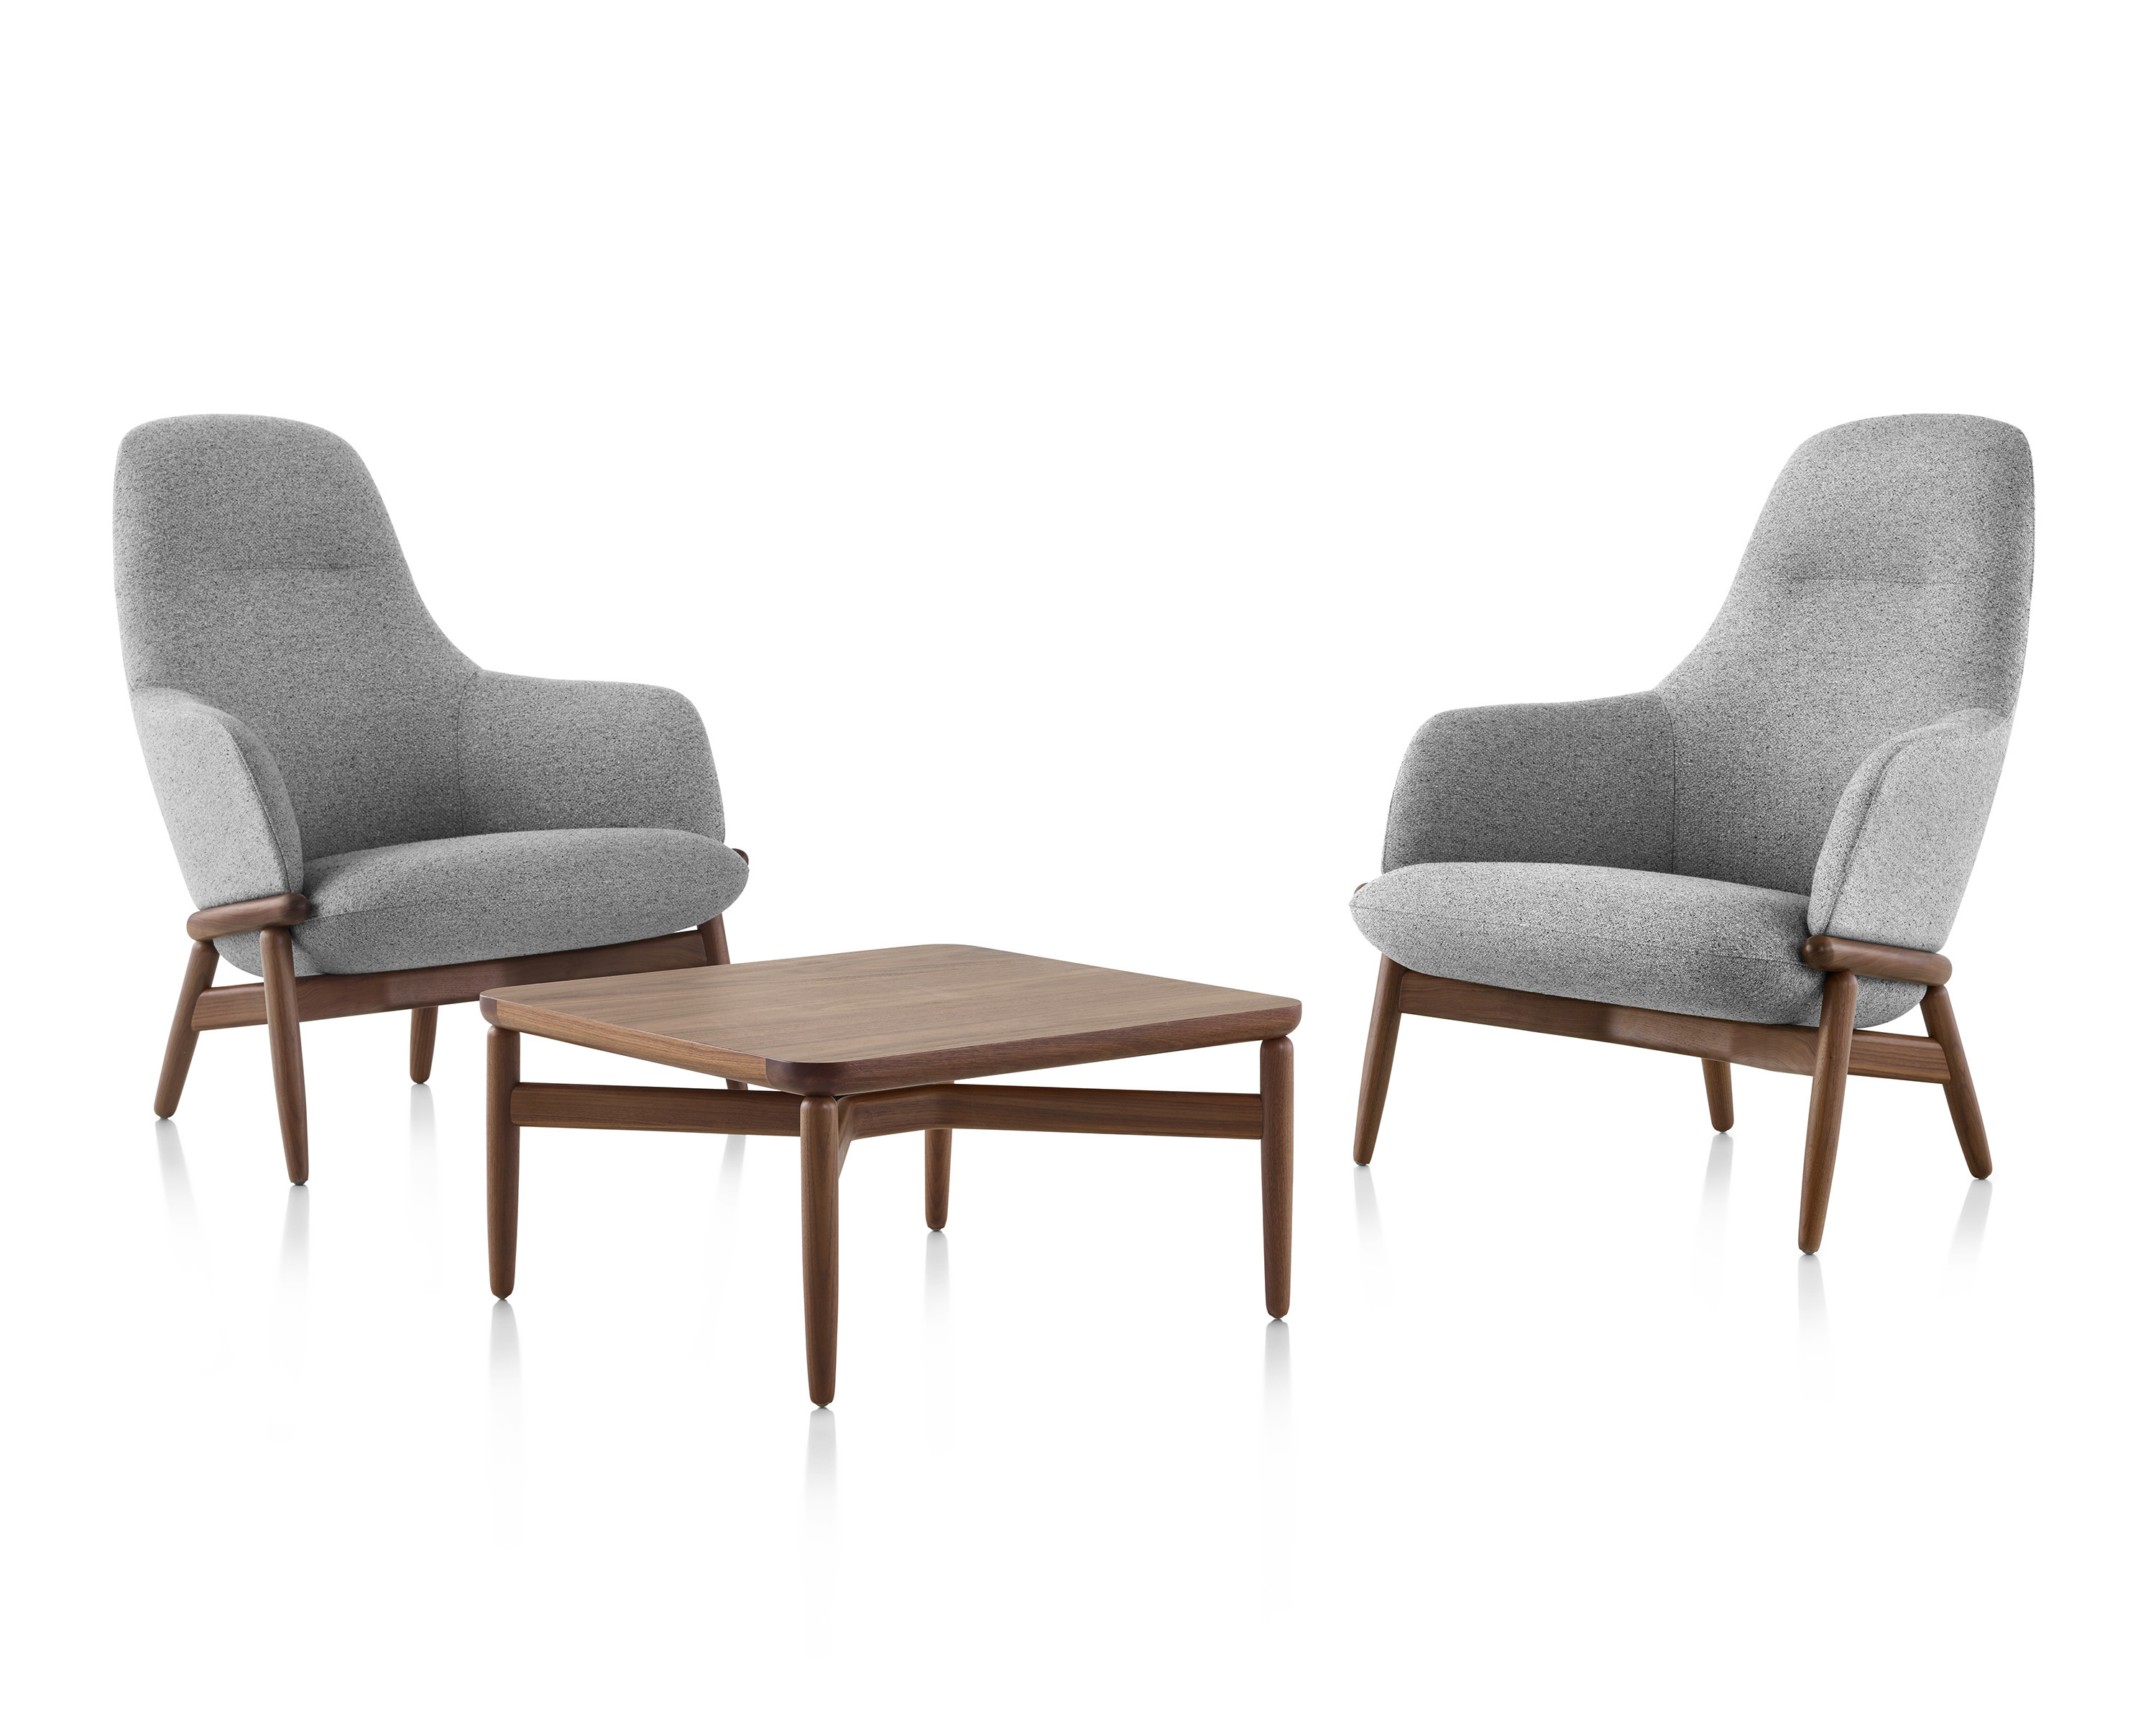 Geiger Reframe Lounge Chairs Midback Chairs And Coffee Table